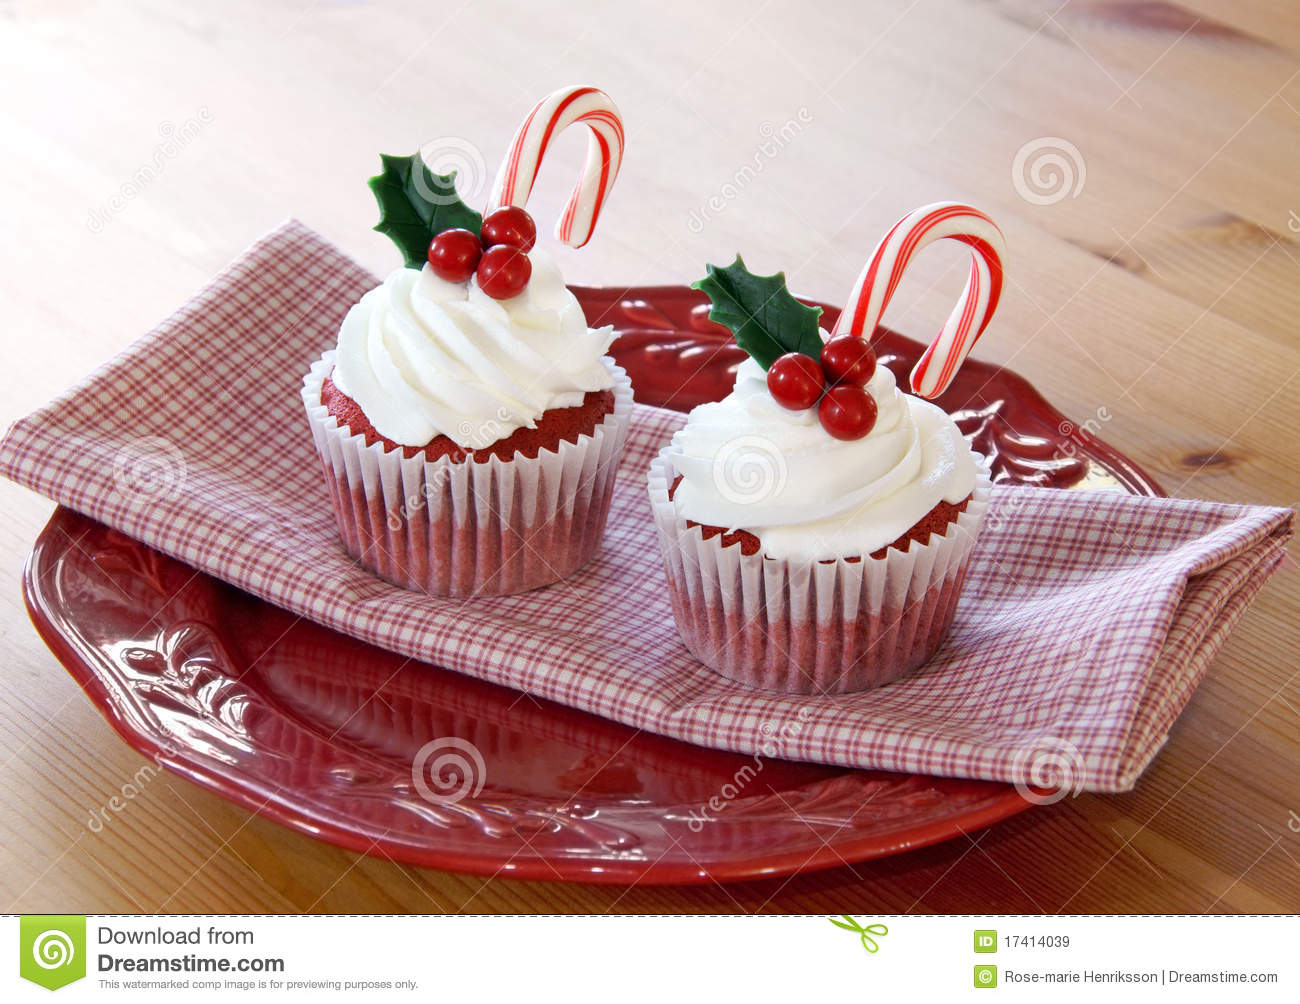 Christmas Cupcakes Royalty Free Stock Images - Image: 17414039